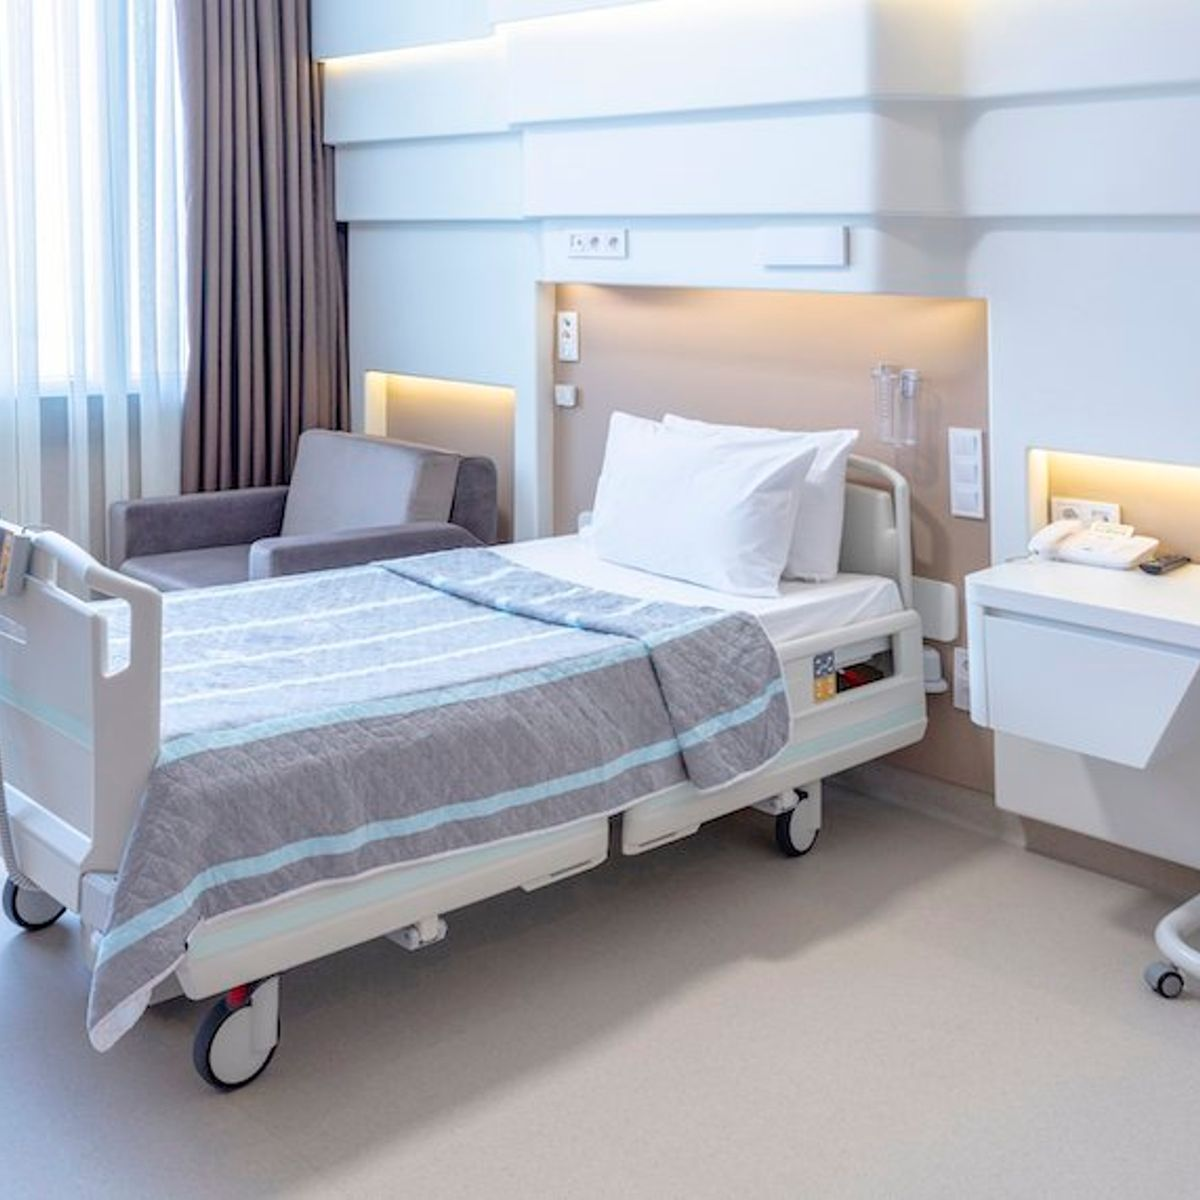 hospital beds, hospital bed for sale, hospital bed manufacturer, hospital bed supplier